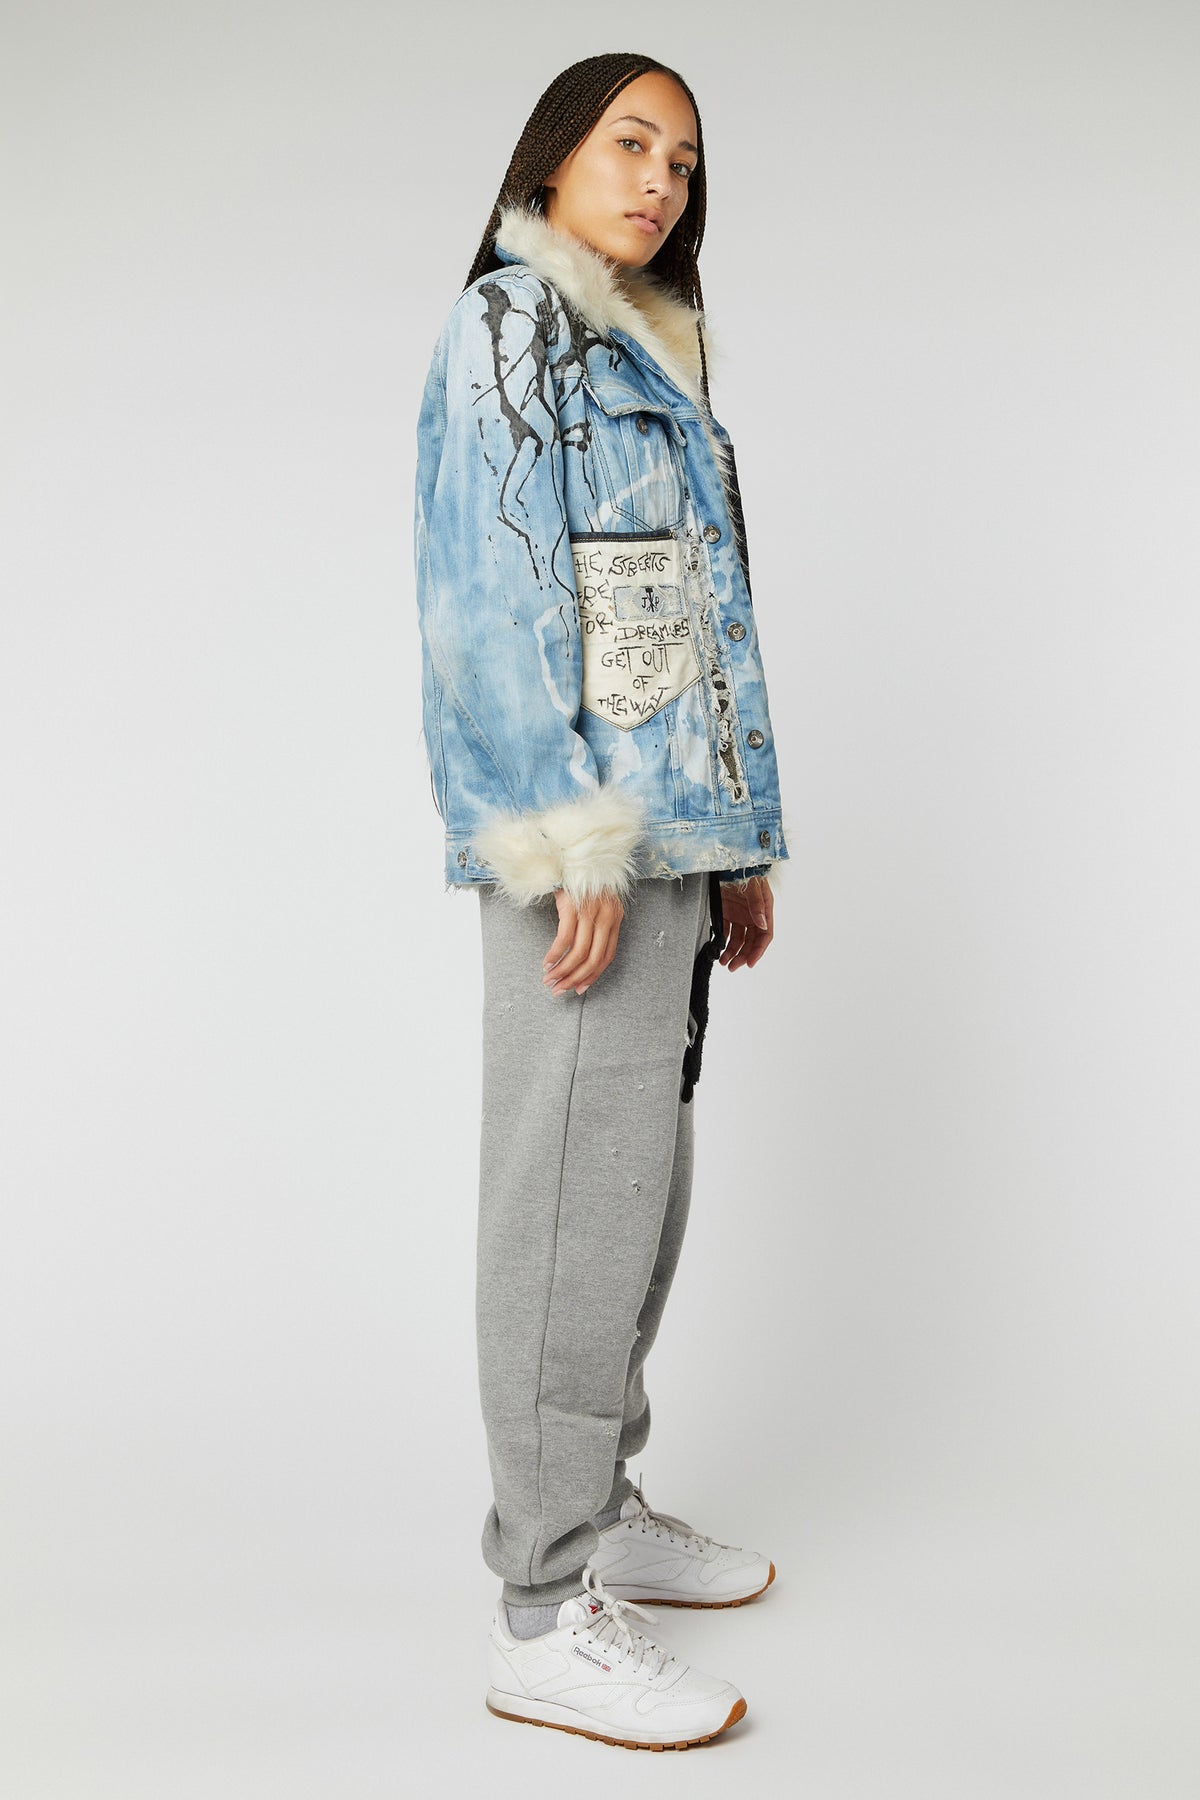 PATCHWORK BLEACHED FUR DENIM JACKETS (MADE TO ORDER ONLY)